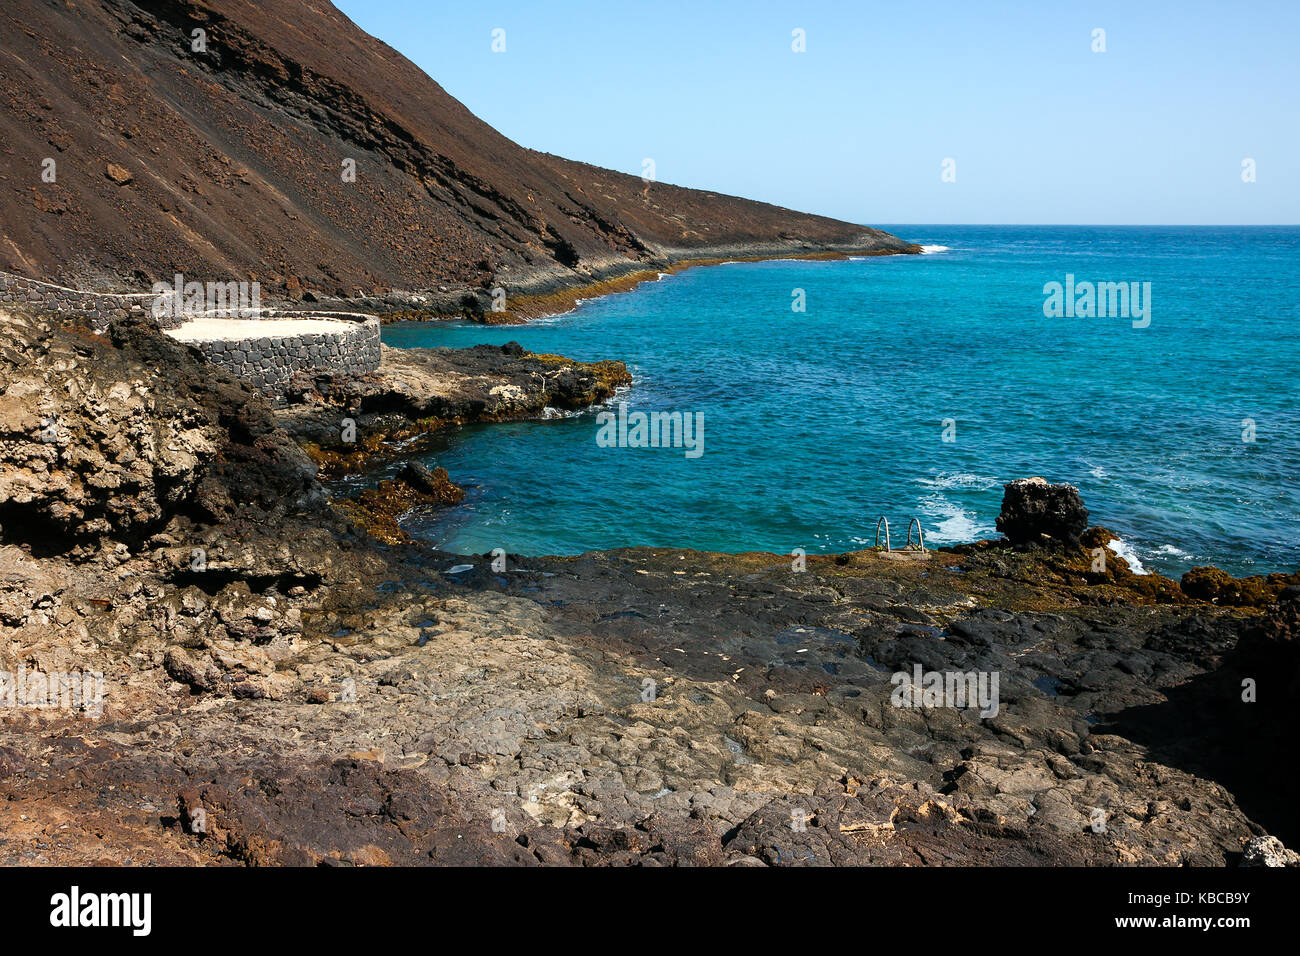 Calhau extinct crater, viewpoint at the basalt shore line, Sao Vicente Island in Cape Verde - Stock Image